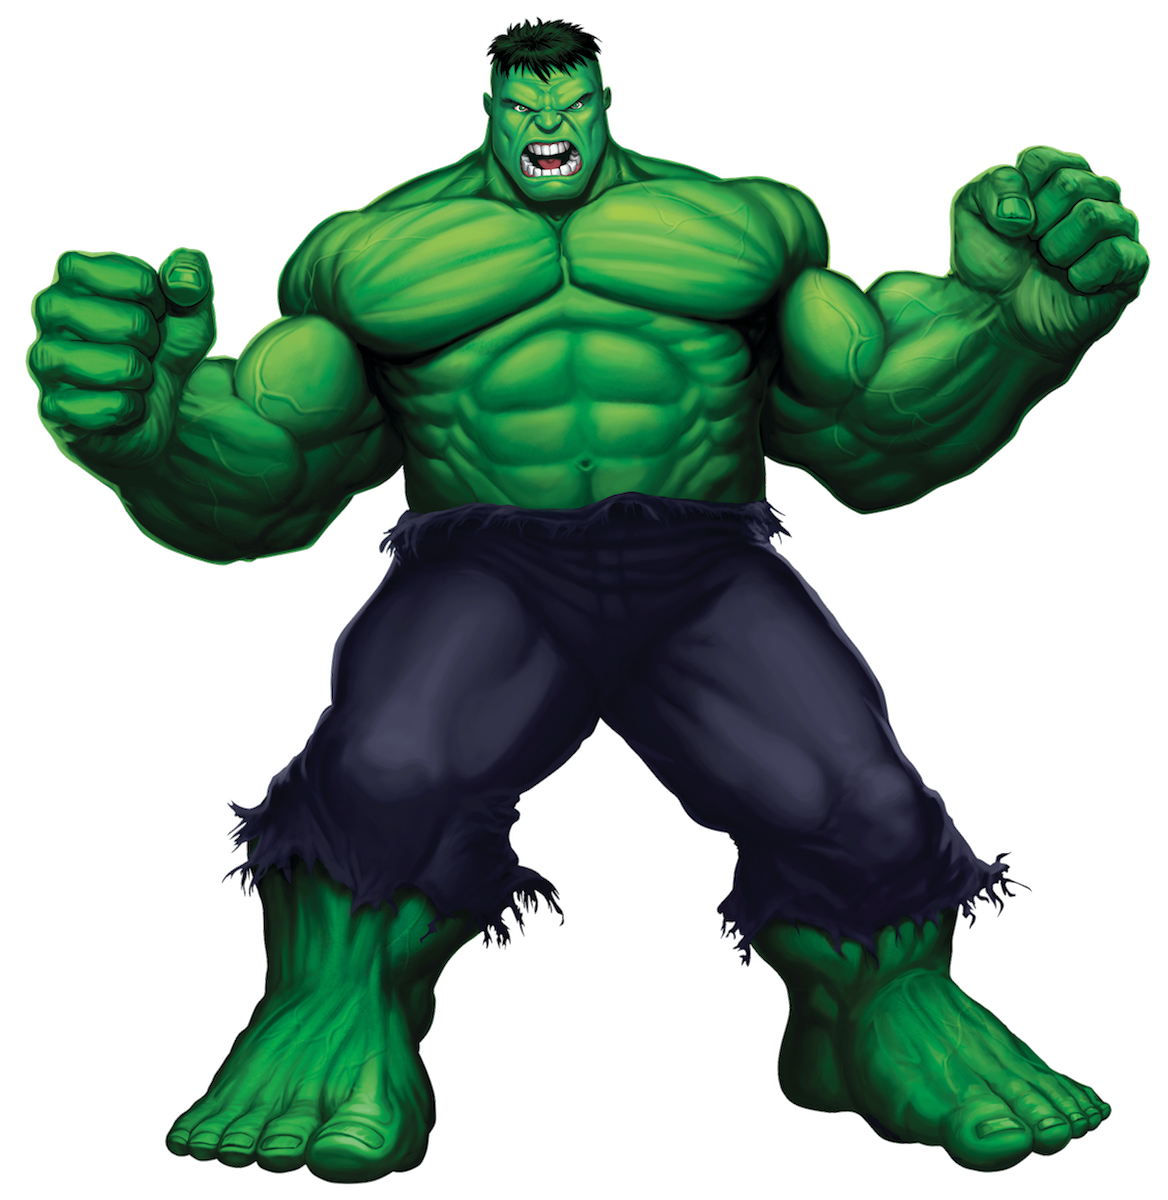 clipart library download Incredible hulk clipart. At getdrawings com free